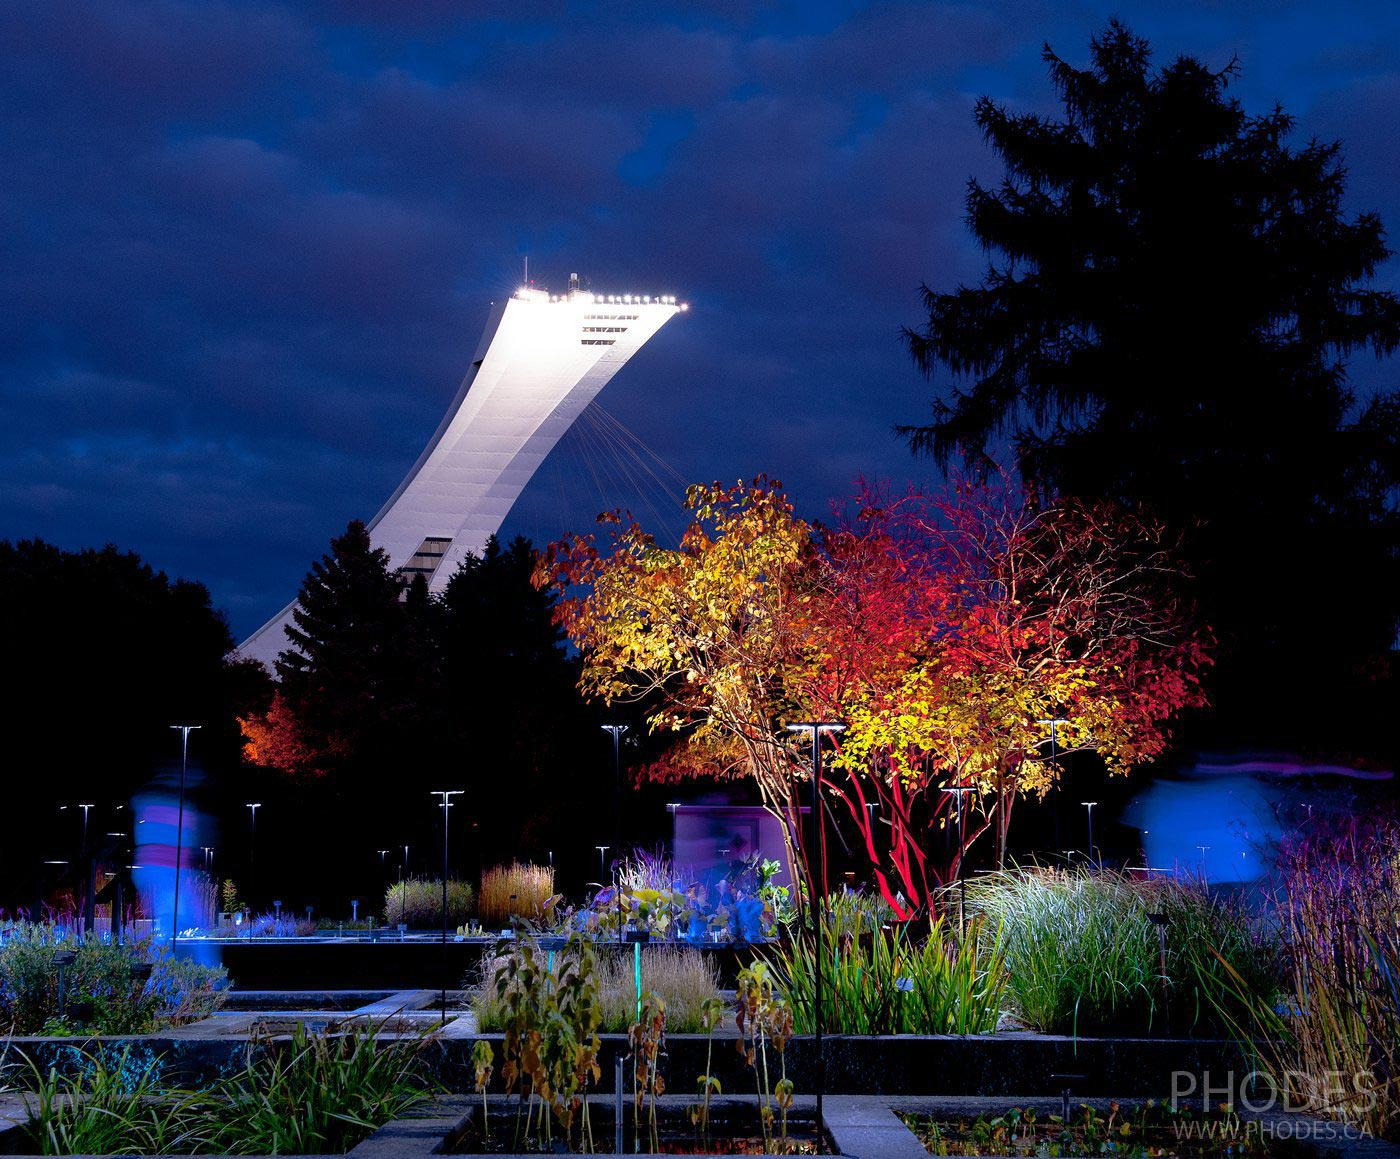 Olympic stadium from Botanical garden, Montreal